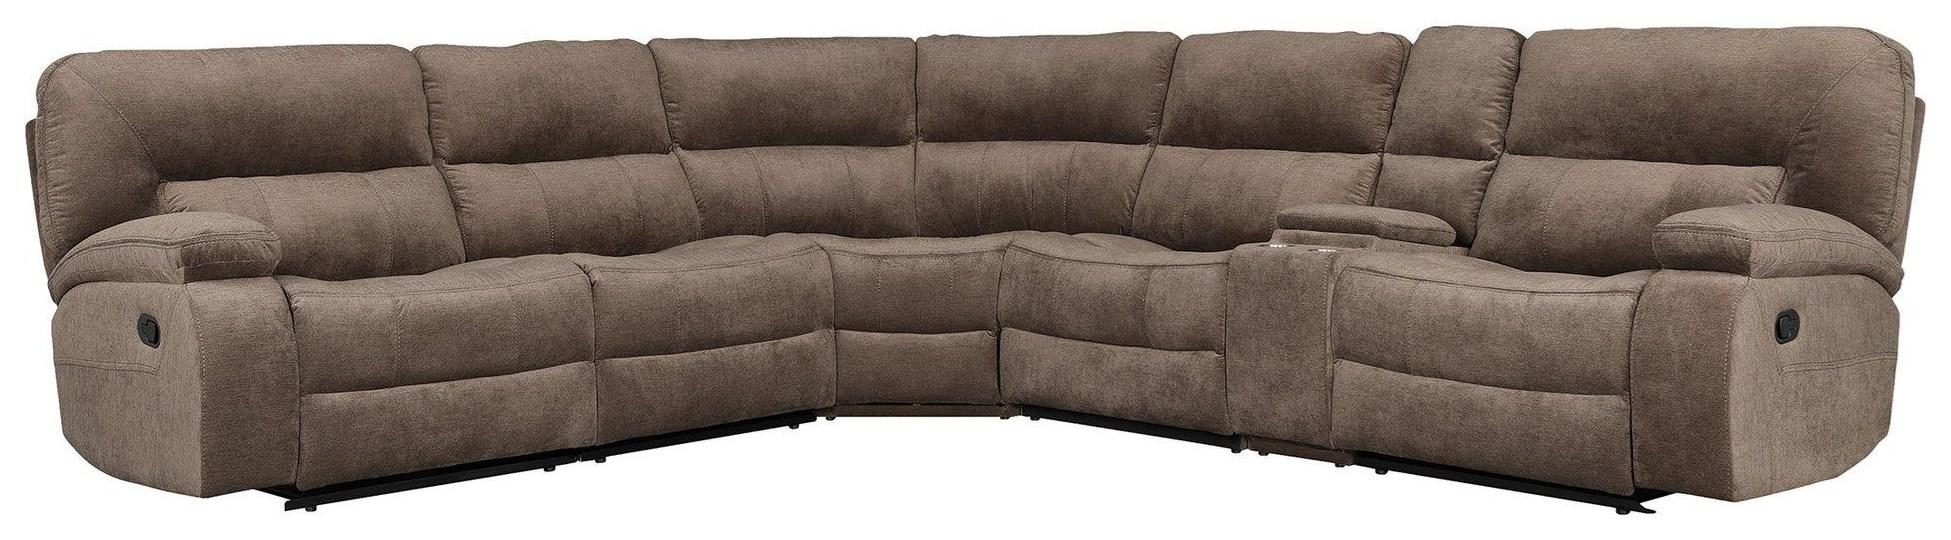 chapman SIX PIECE SECTIONAL by Parker House at Johnny Janosik